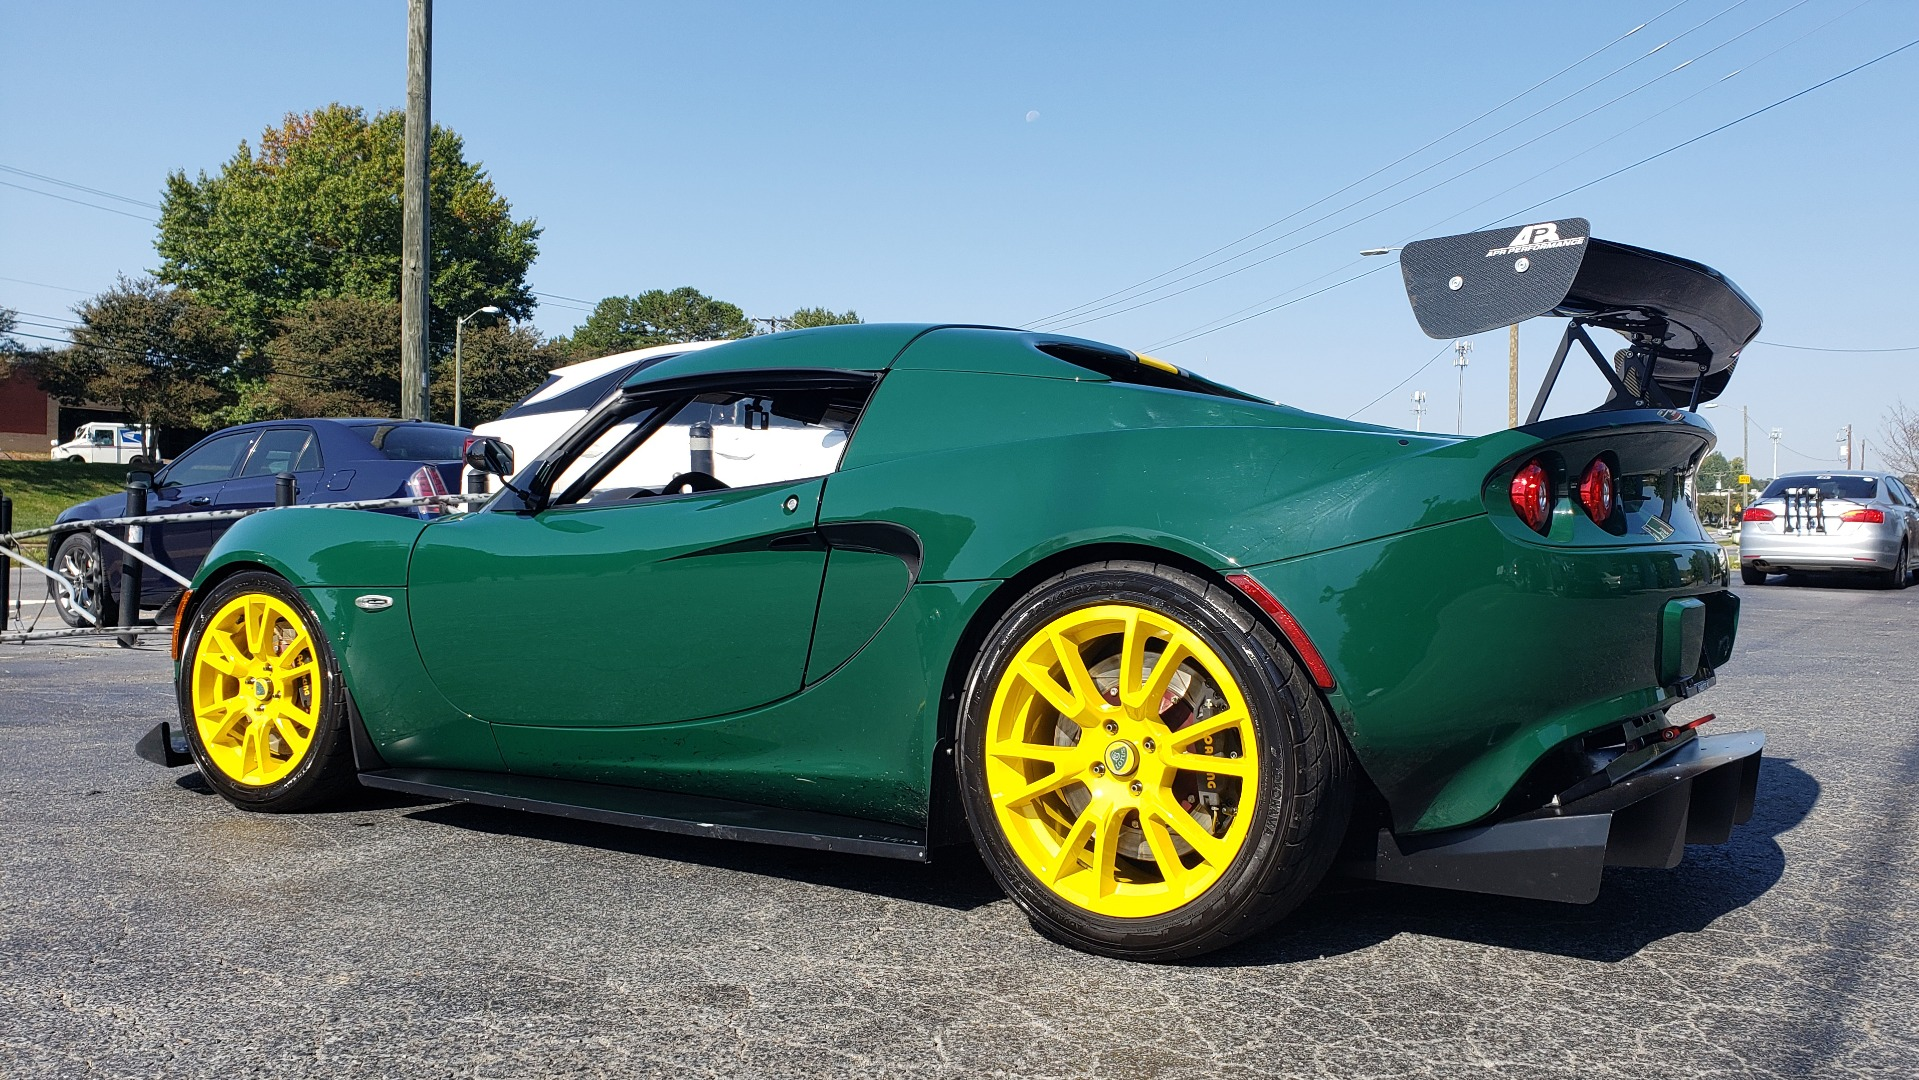 Used 2011 Lotus ELISE SC RACE CAR / UP TO DATE / READY TO RACE W/3-SETS WHEELS & TIRES for sale $51,999 at Formula Imports in Charlotte NC 28227 5